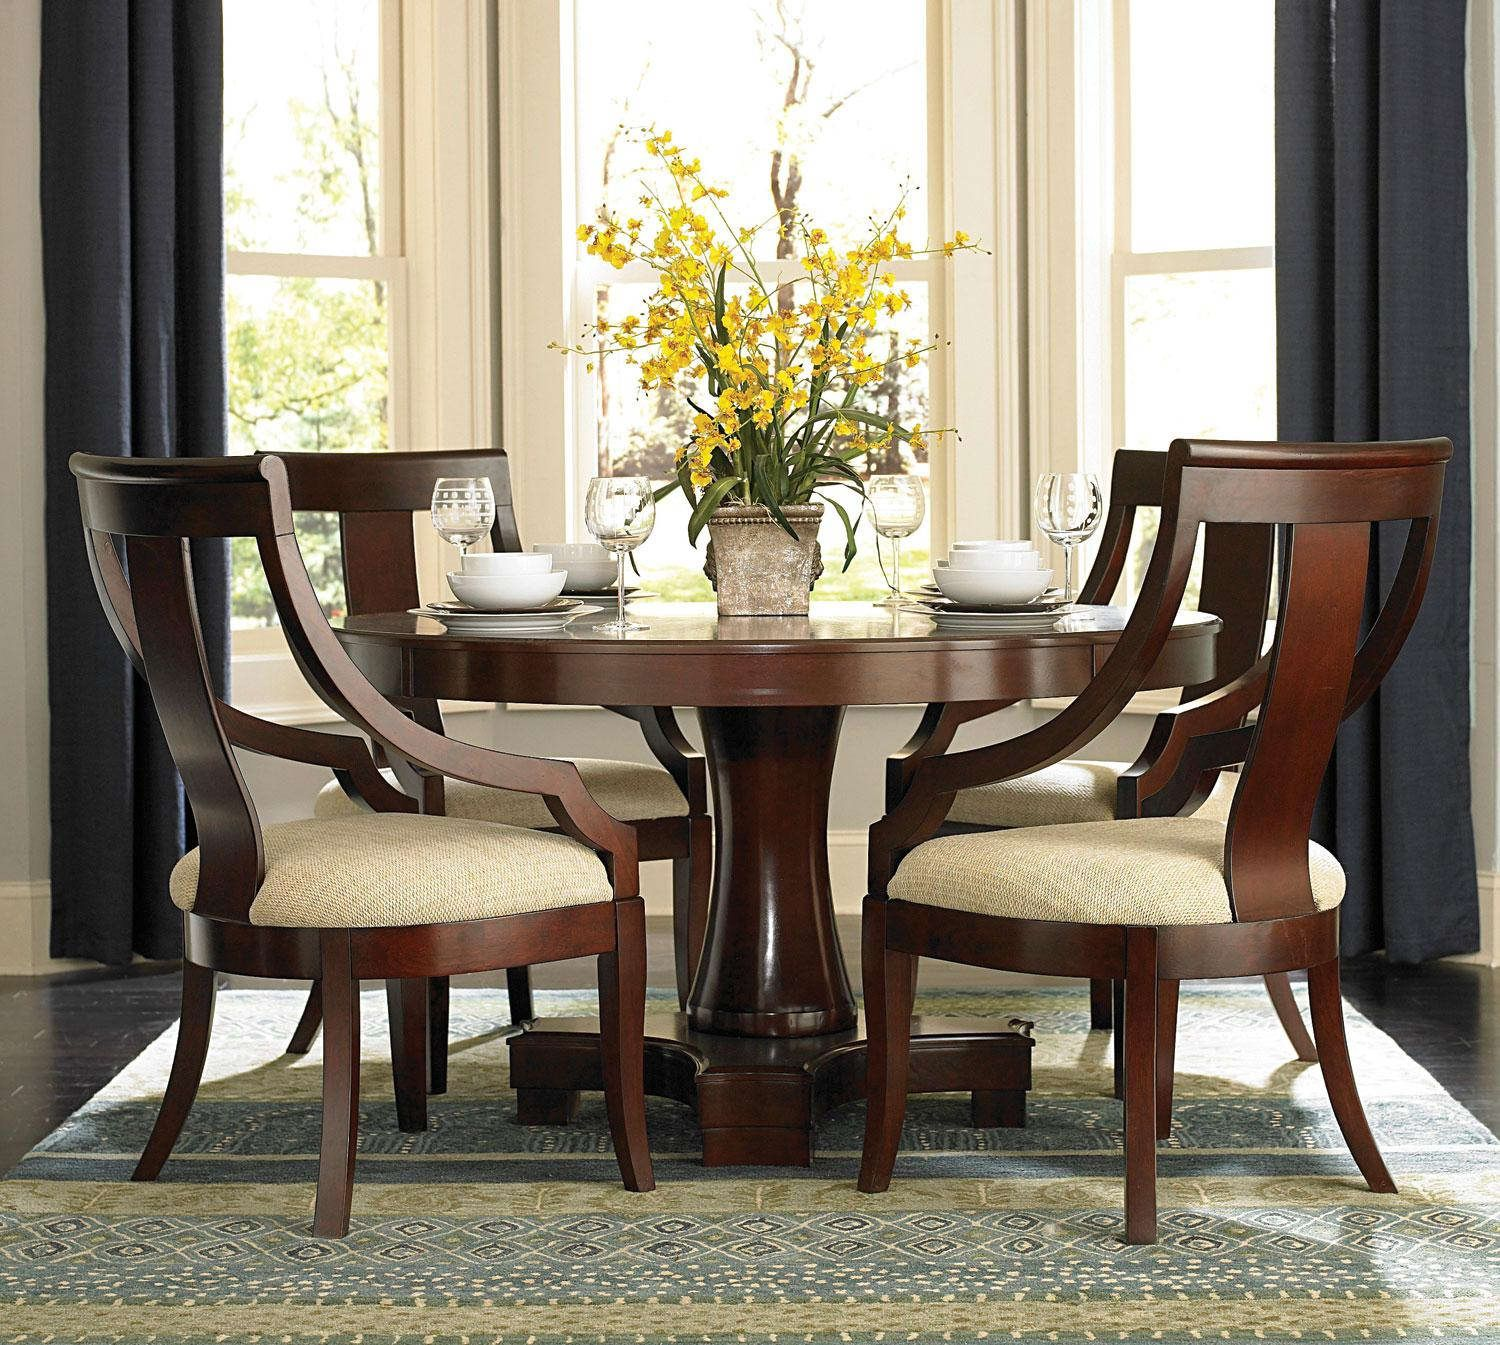 Superb Dining Room : Beautiful Yellow Dining Table Centerpieces With Round Dining  Table And Laminated Chair Plus Bay Window Ideas For Dining Table  Centerpieces ...